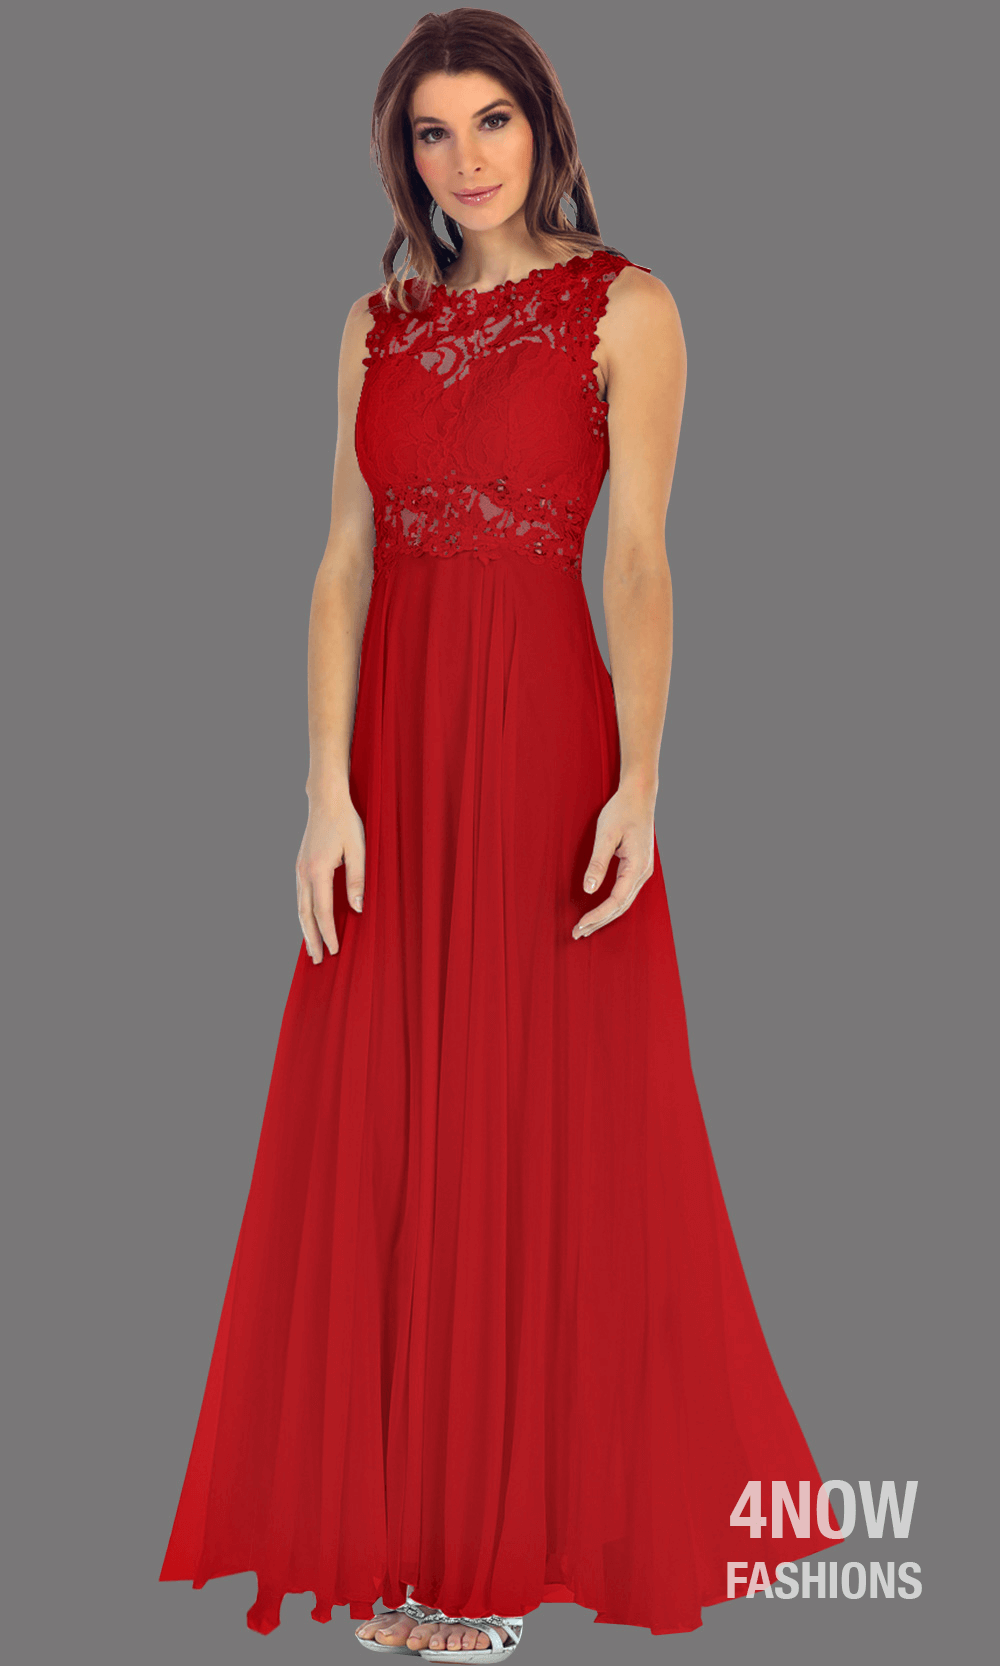 Long Red High Neck Dress with Chiffon A-line Skirt